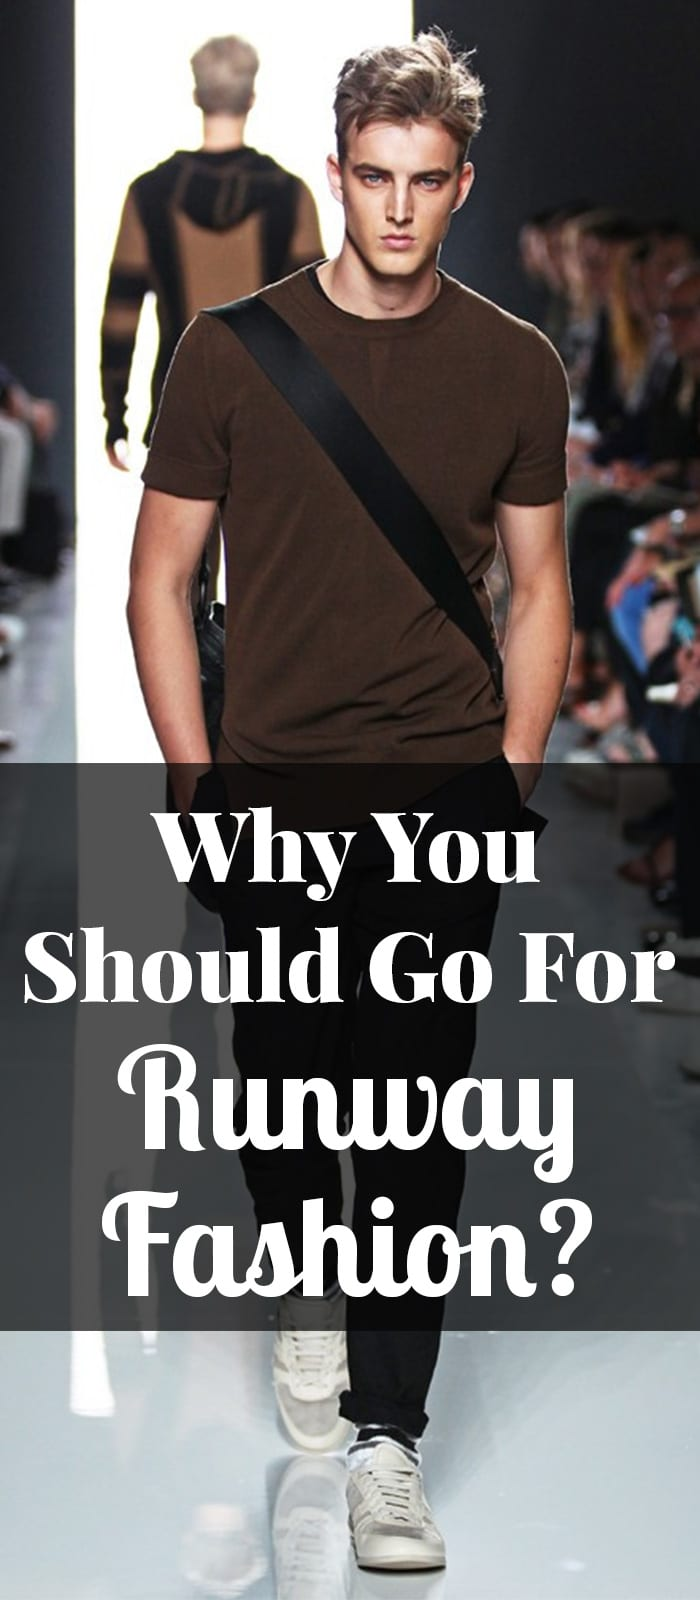 Why You Should Go For Runway Fashion